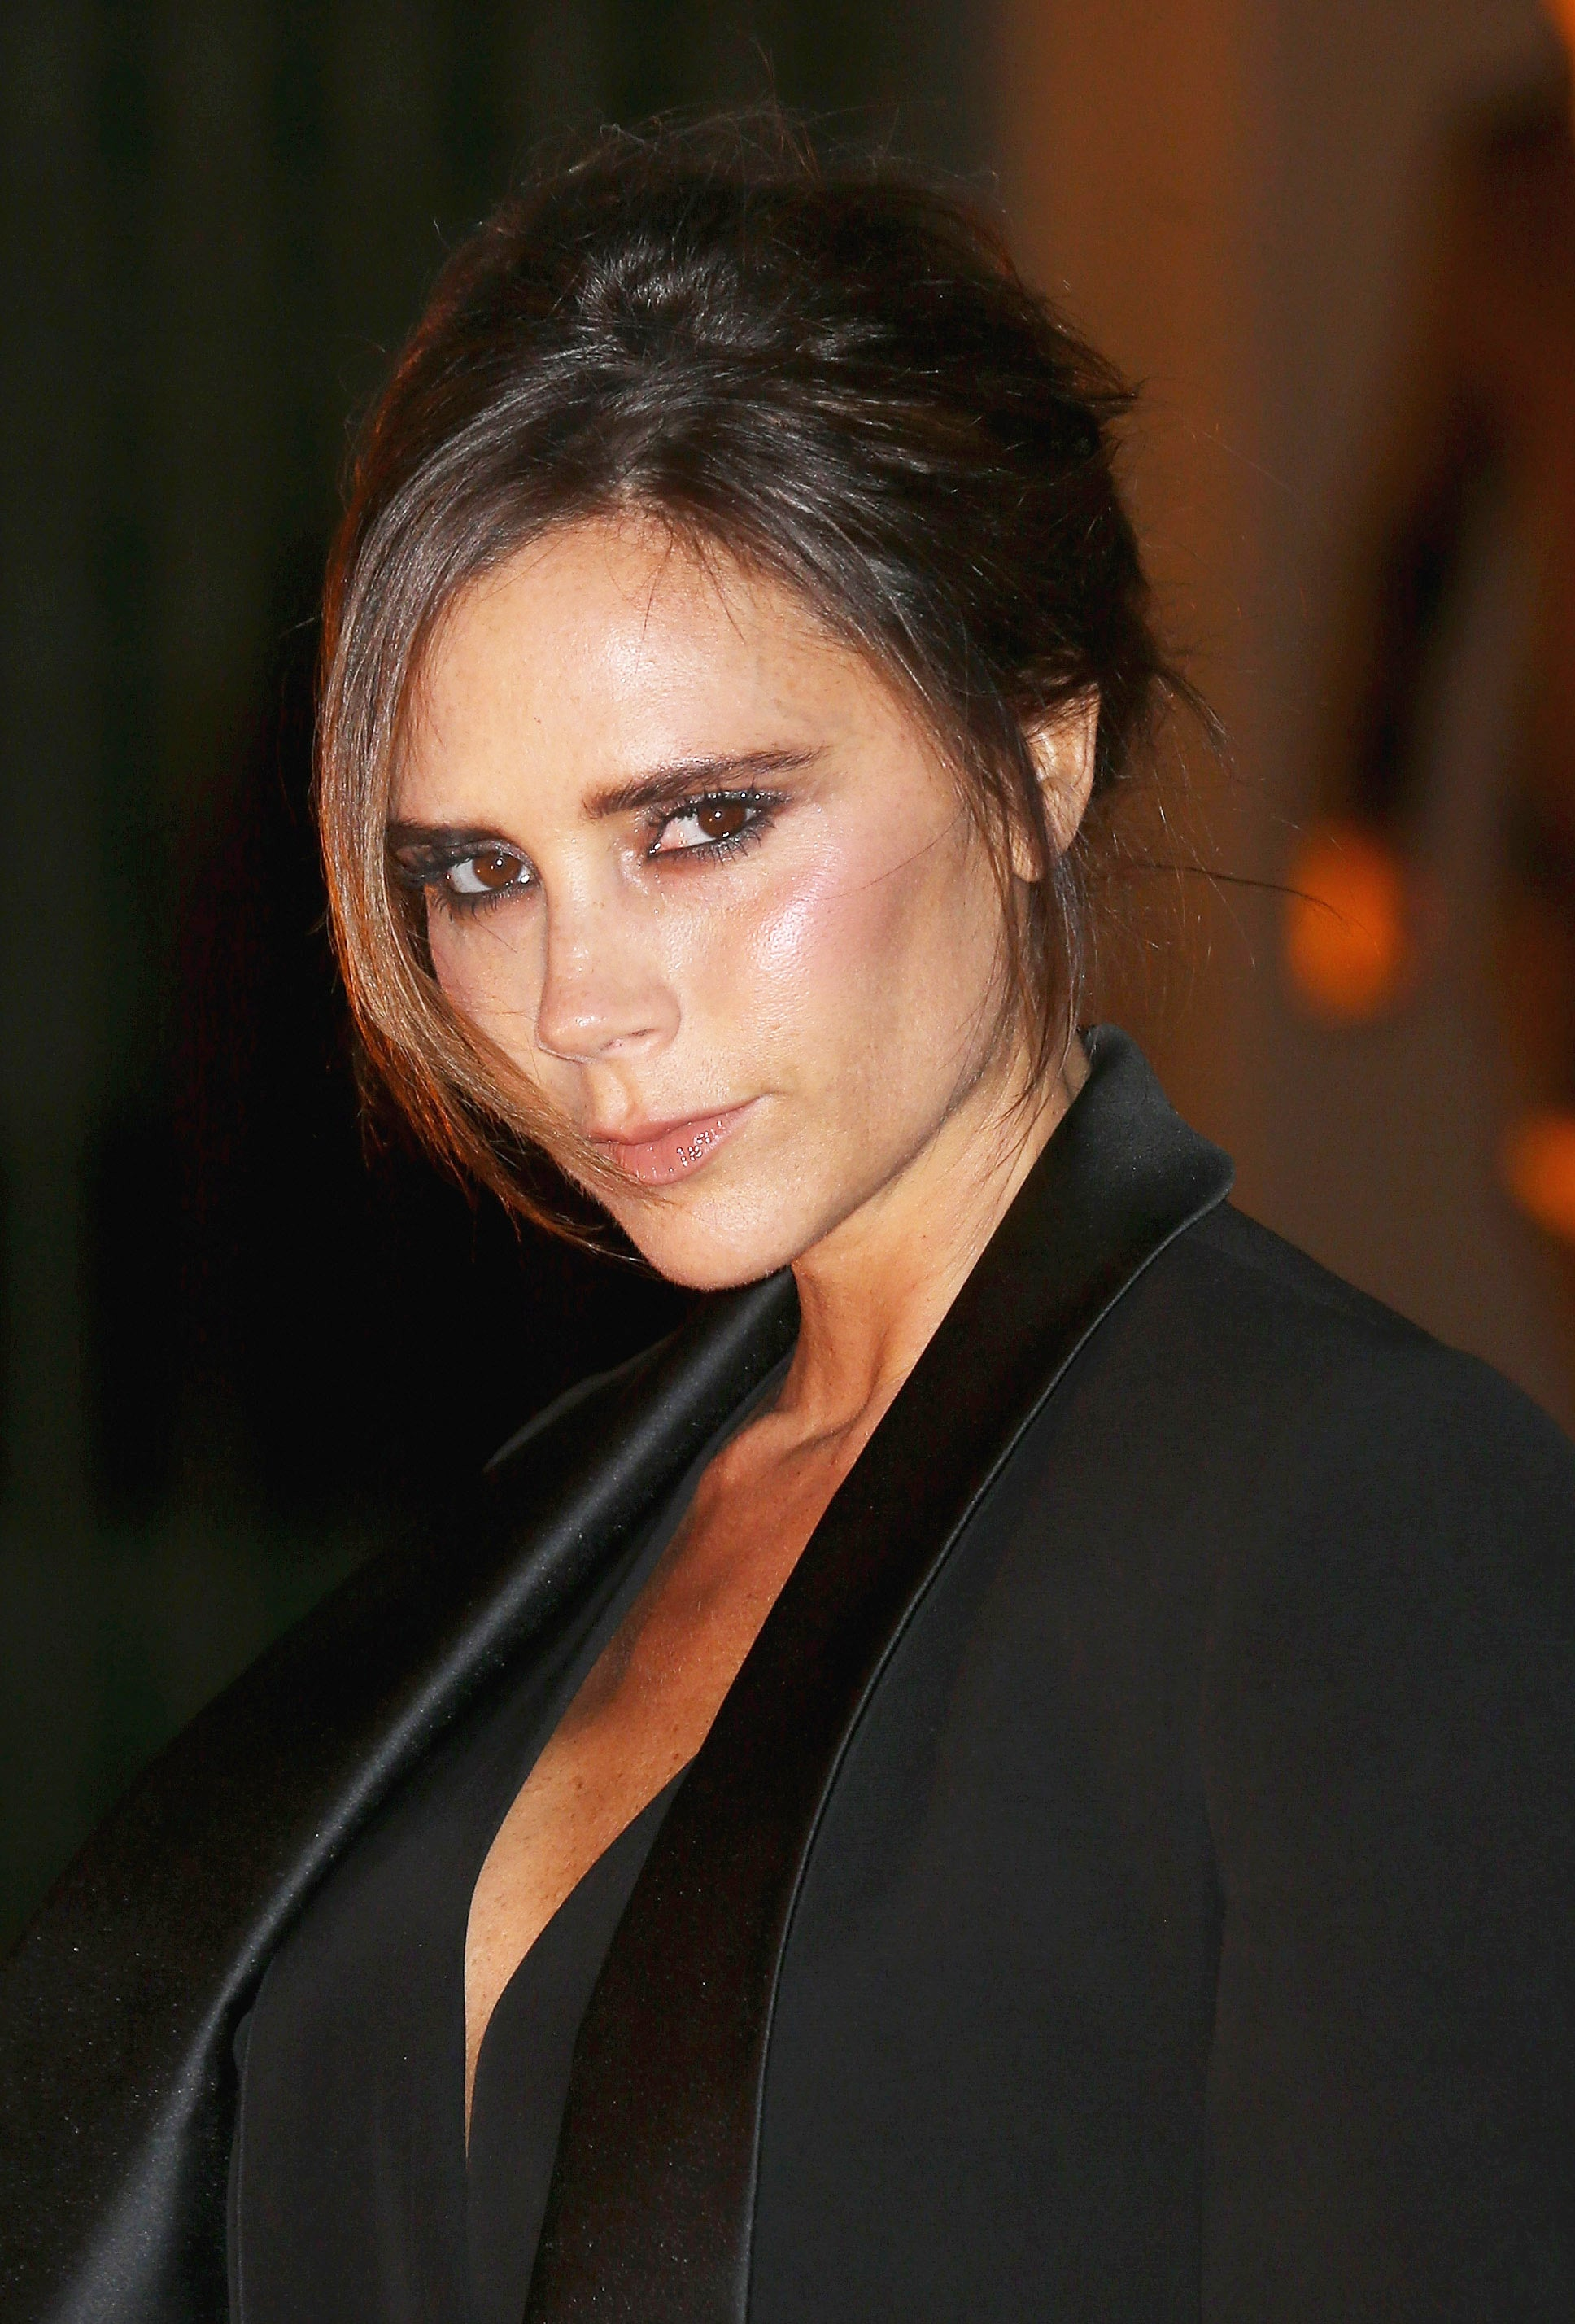 Victoria Beckham at An Evening to Celebrate The Global Fund.